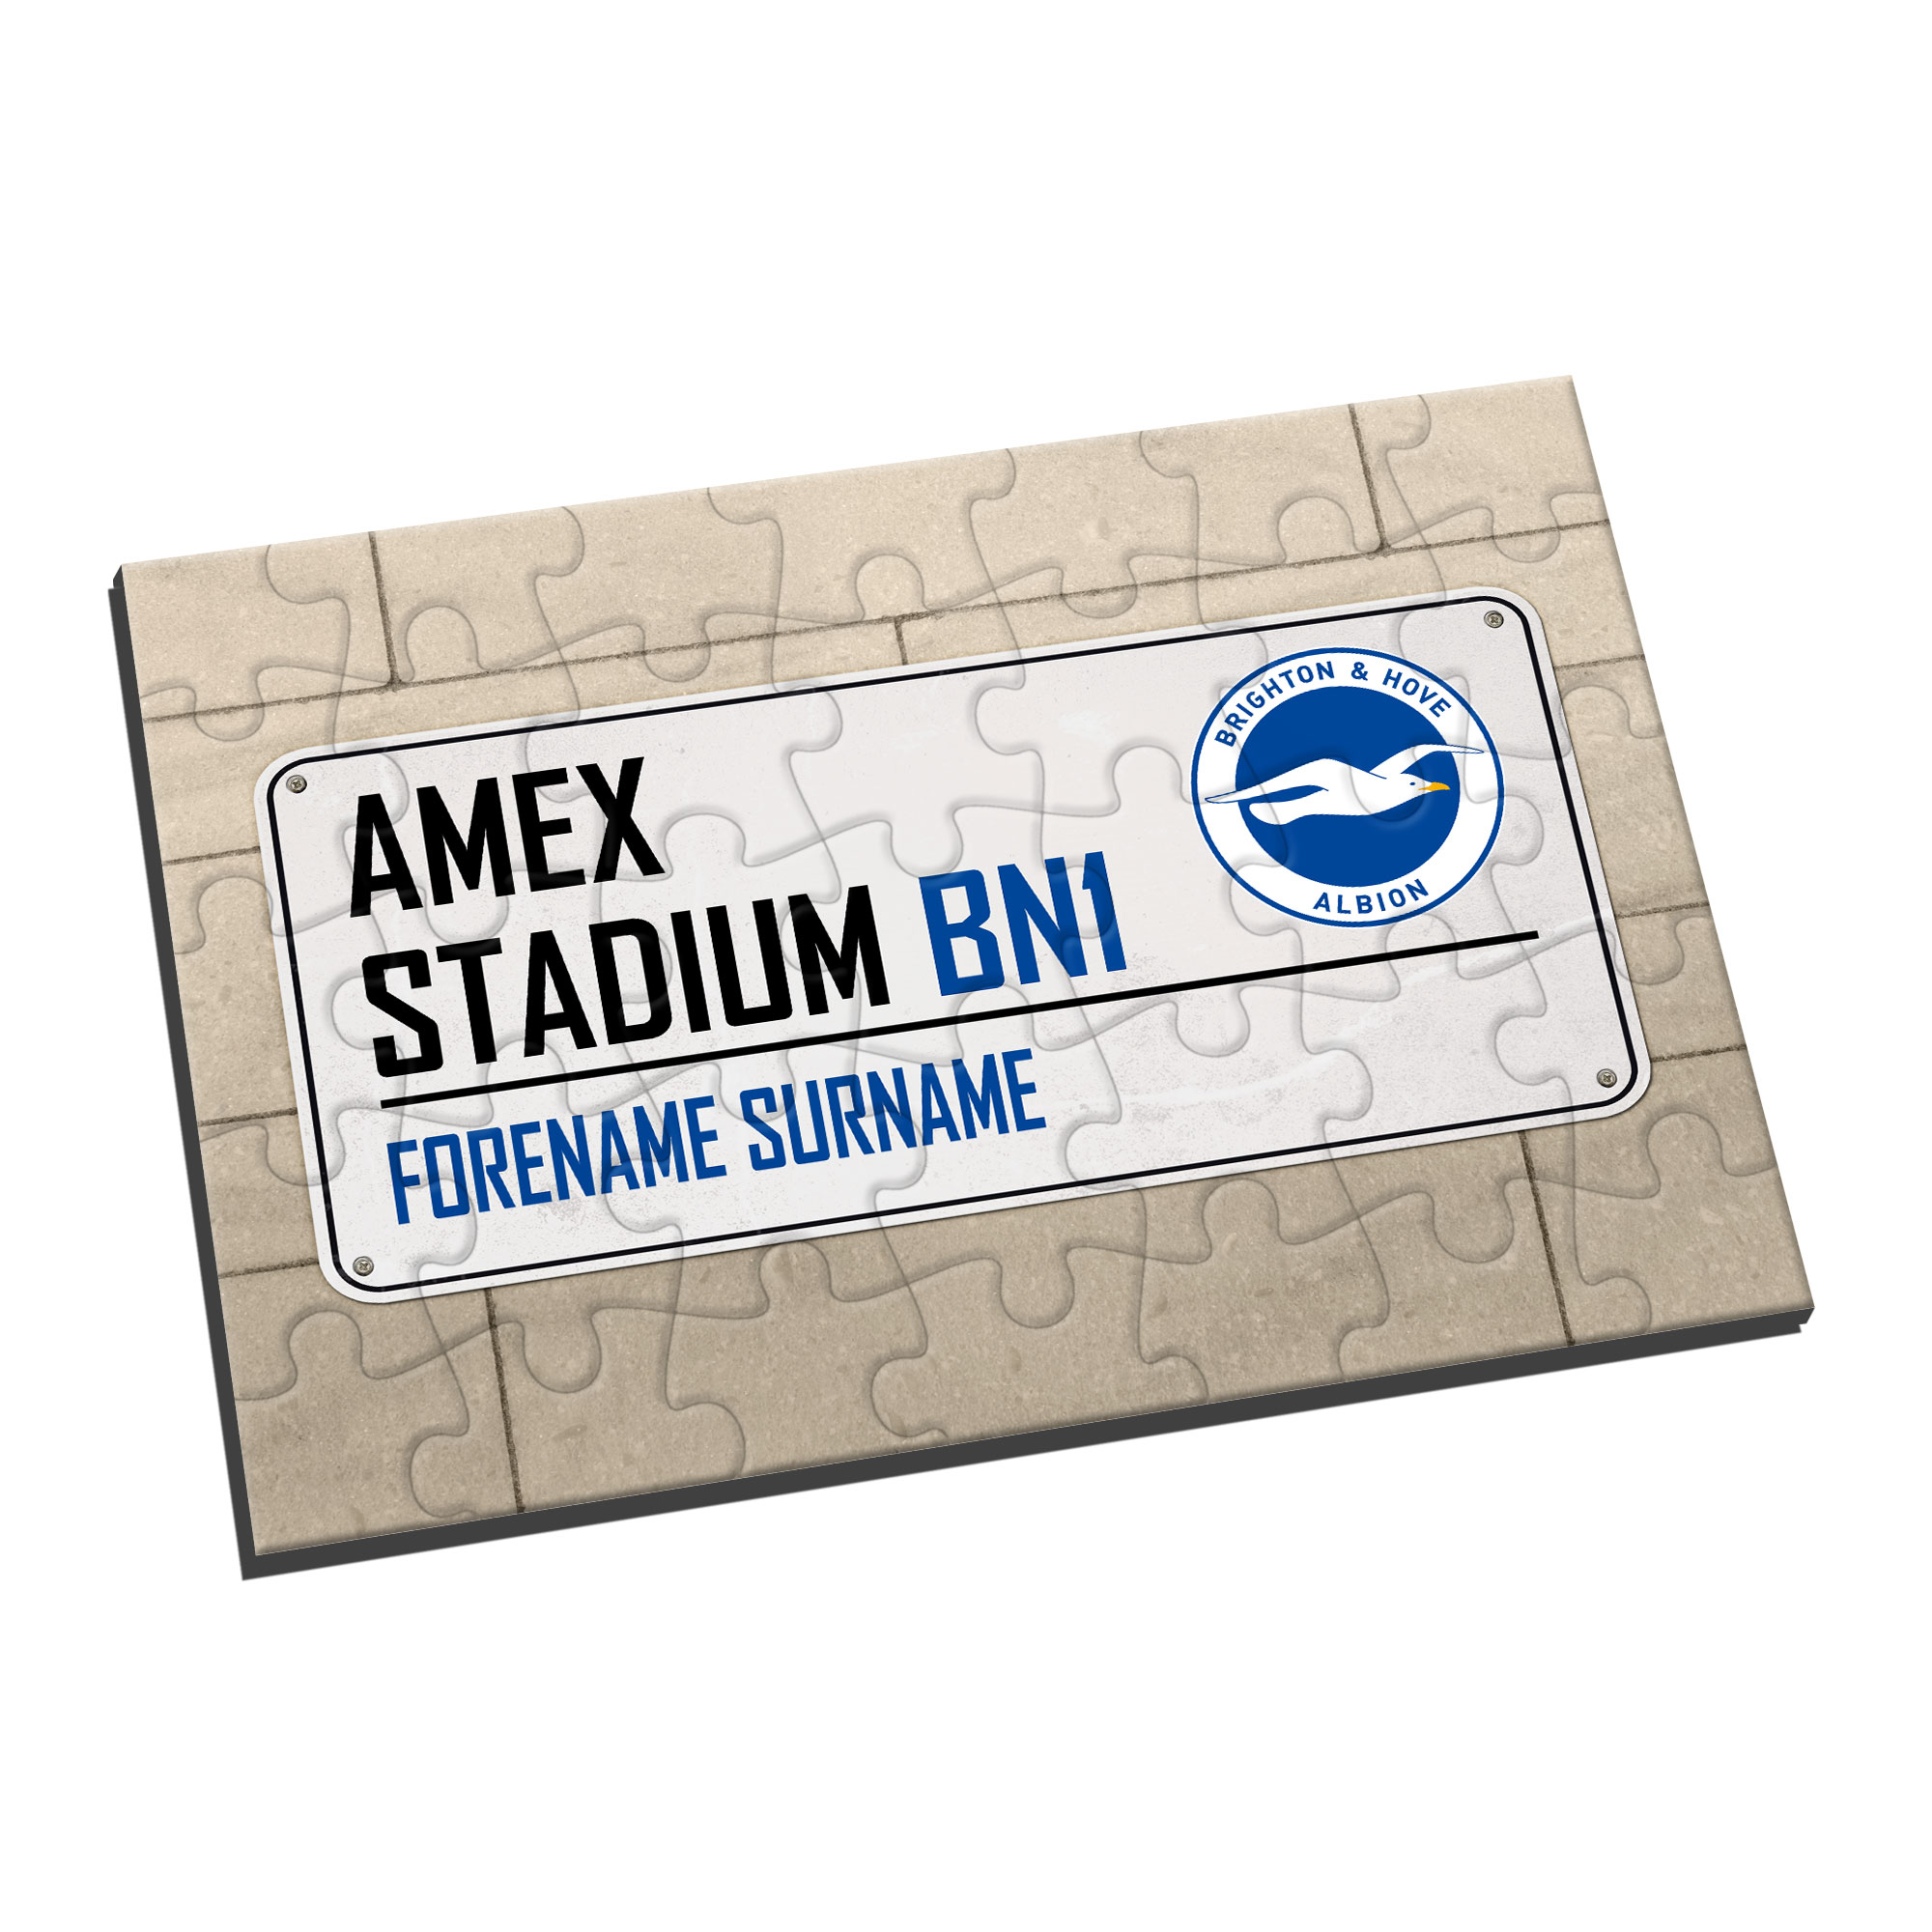 Brighton & Hove Albion FC Street Sign Jigsaw